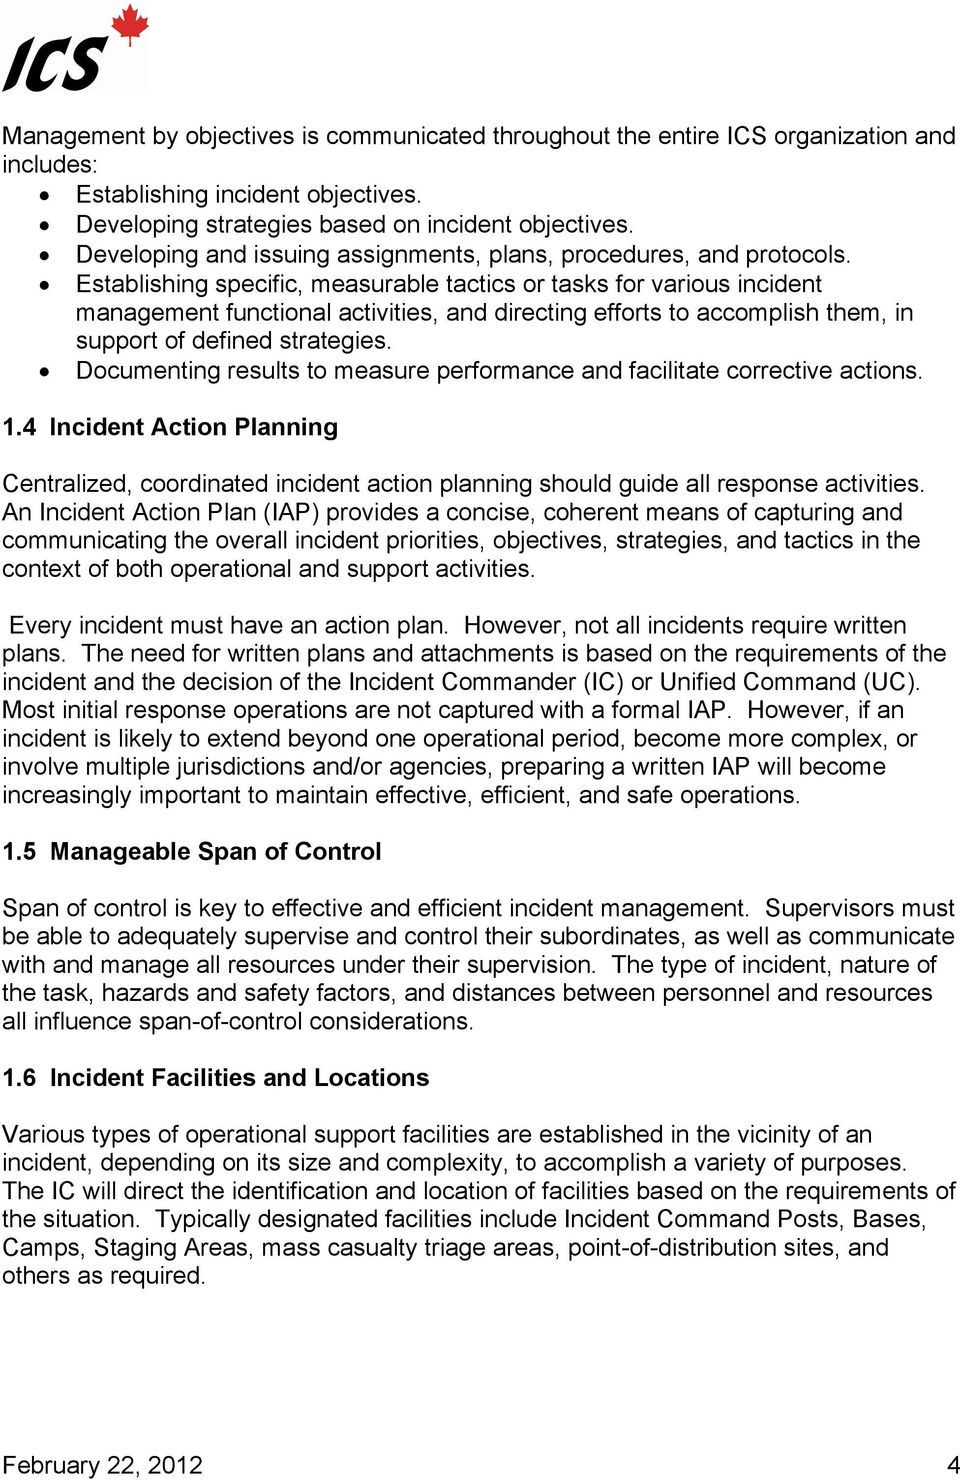 Establishing specific, measurable tactics or tasks for various incident management functional activities, and directing efforts to accomplish them, in support of defined strategies.